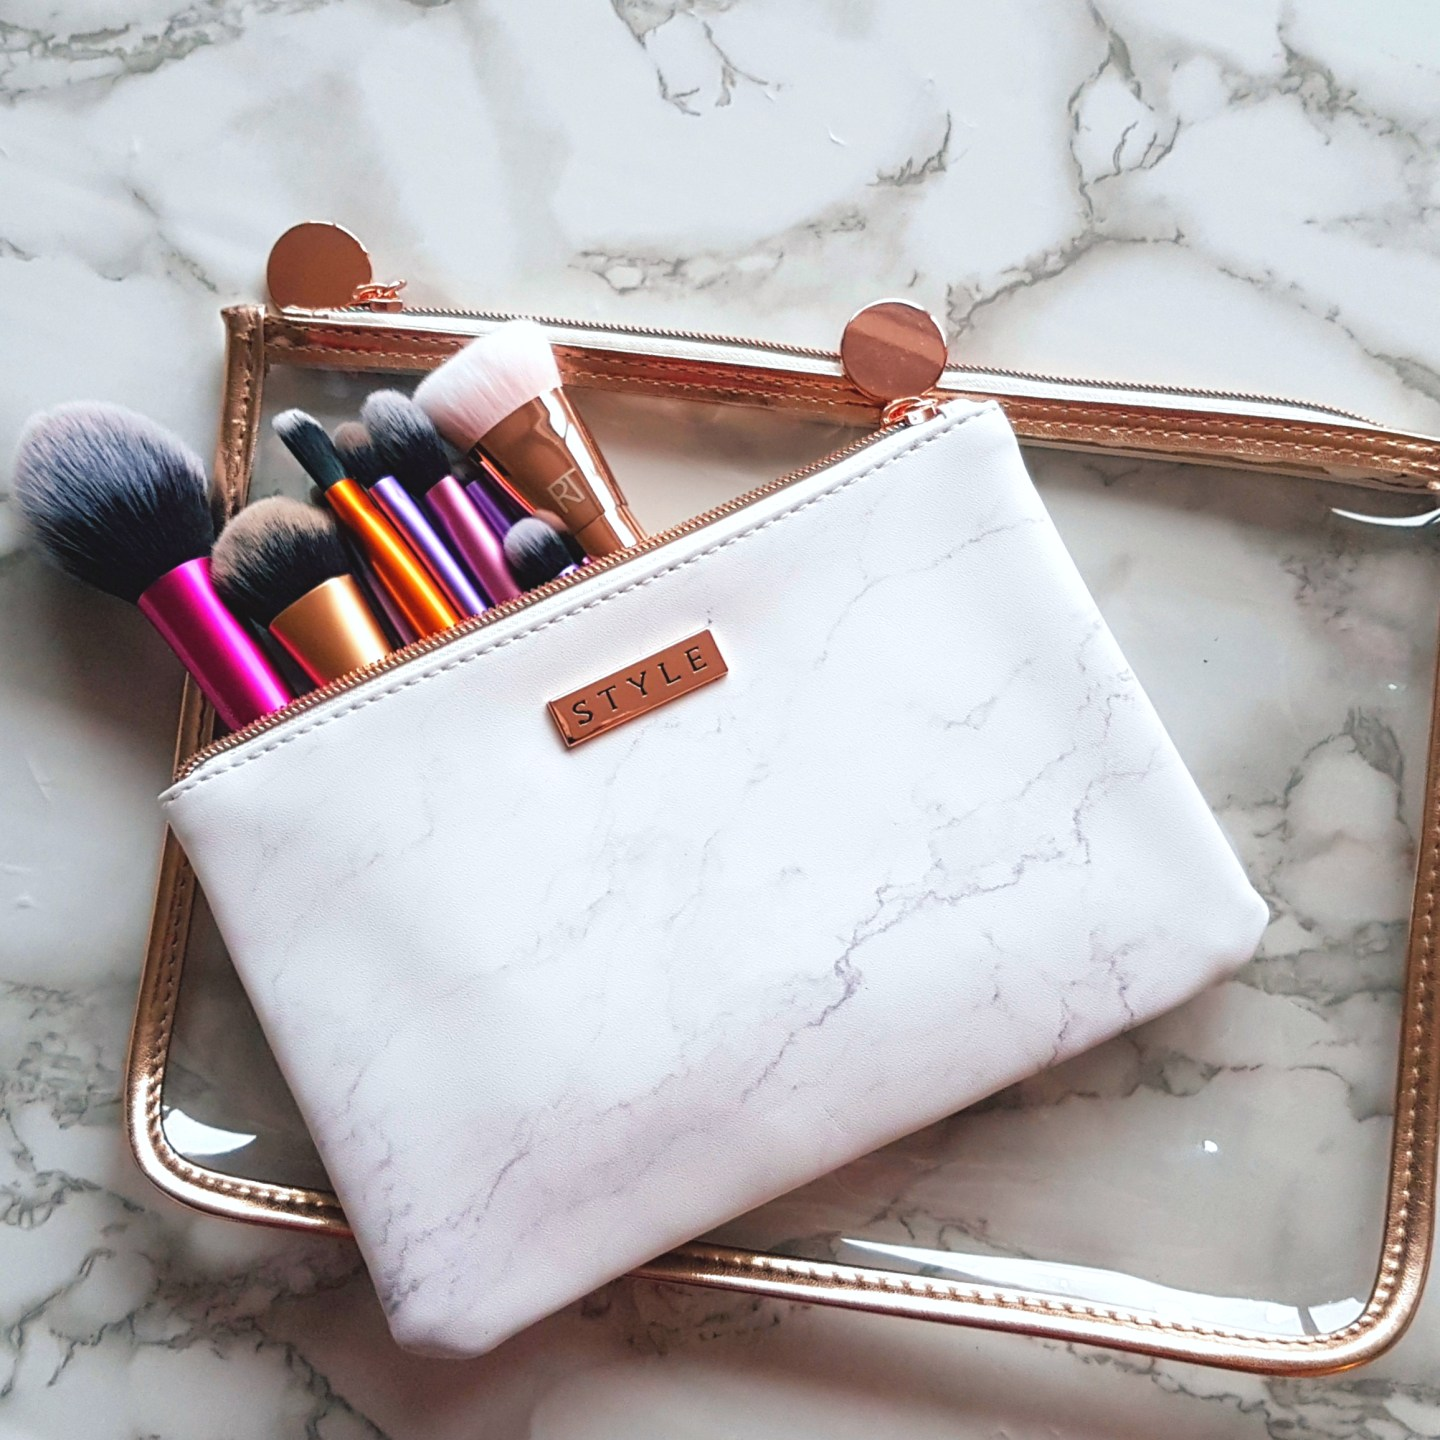 Cleaning Makeup Brushes: My Top 3 Ways